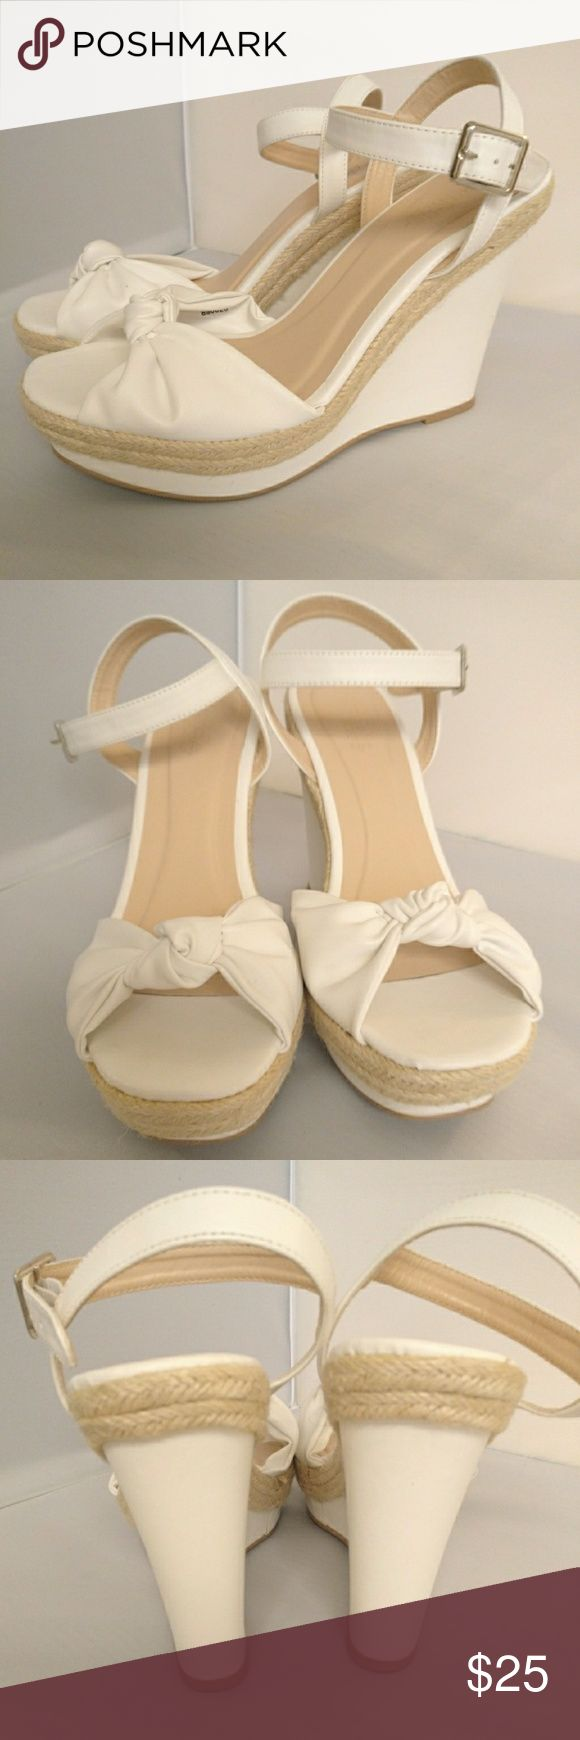 Charlotte Russe White Espadrille Wedges Charlotte Russe White Espadrille Wedges in size 8. New, Worn once for photoshoot. Charlotte Russe Shoes Wedges